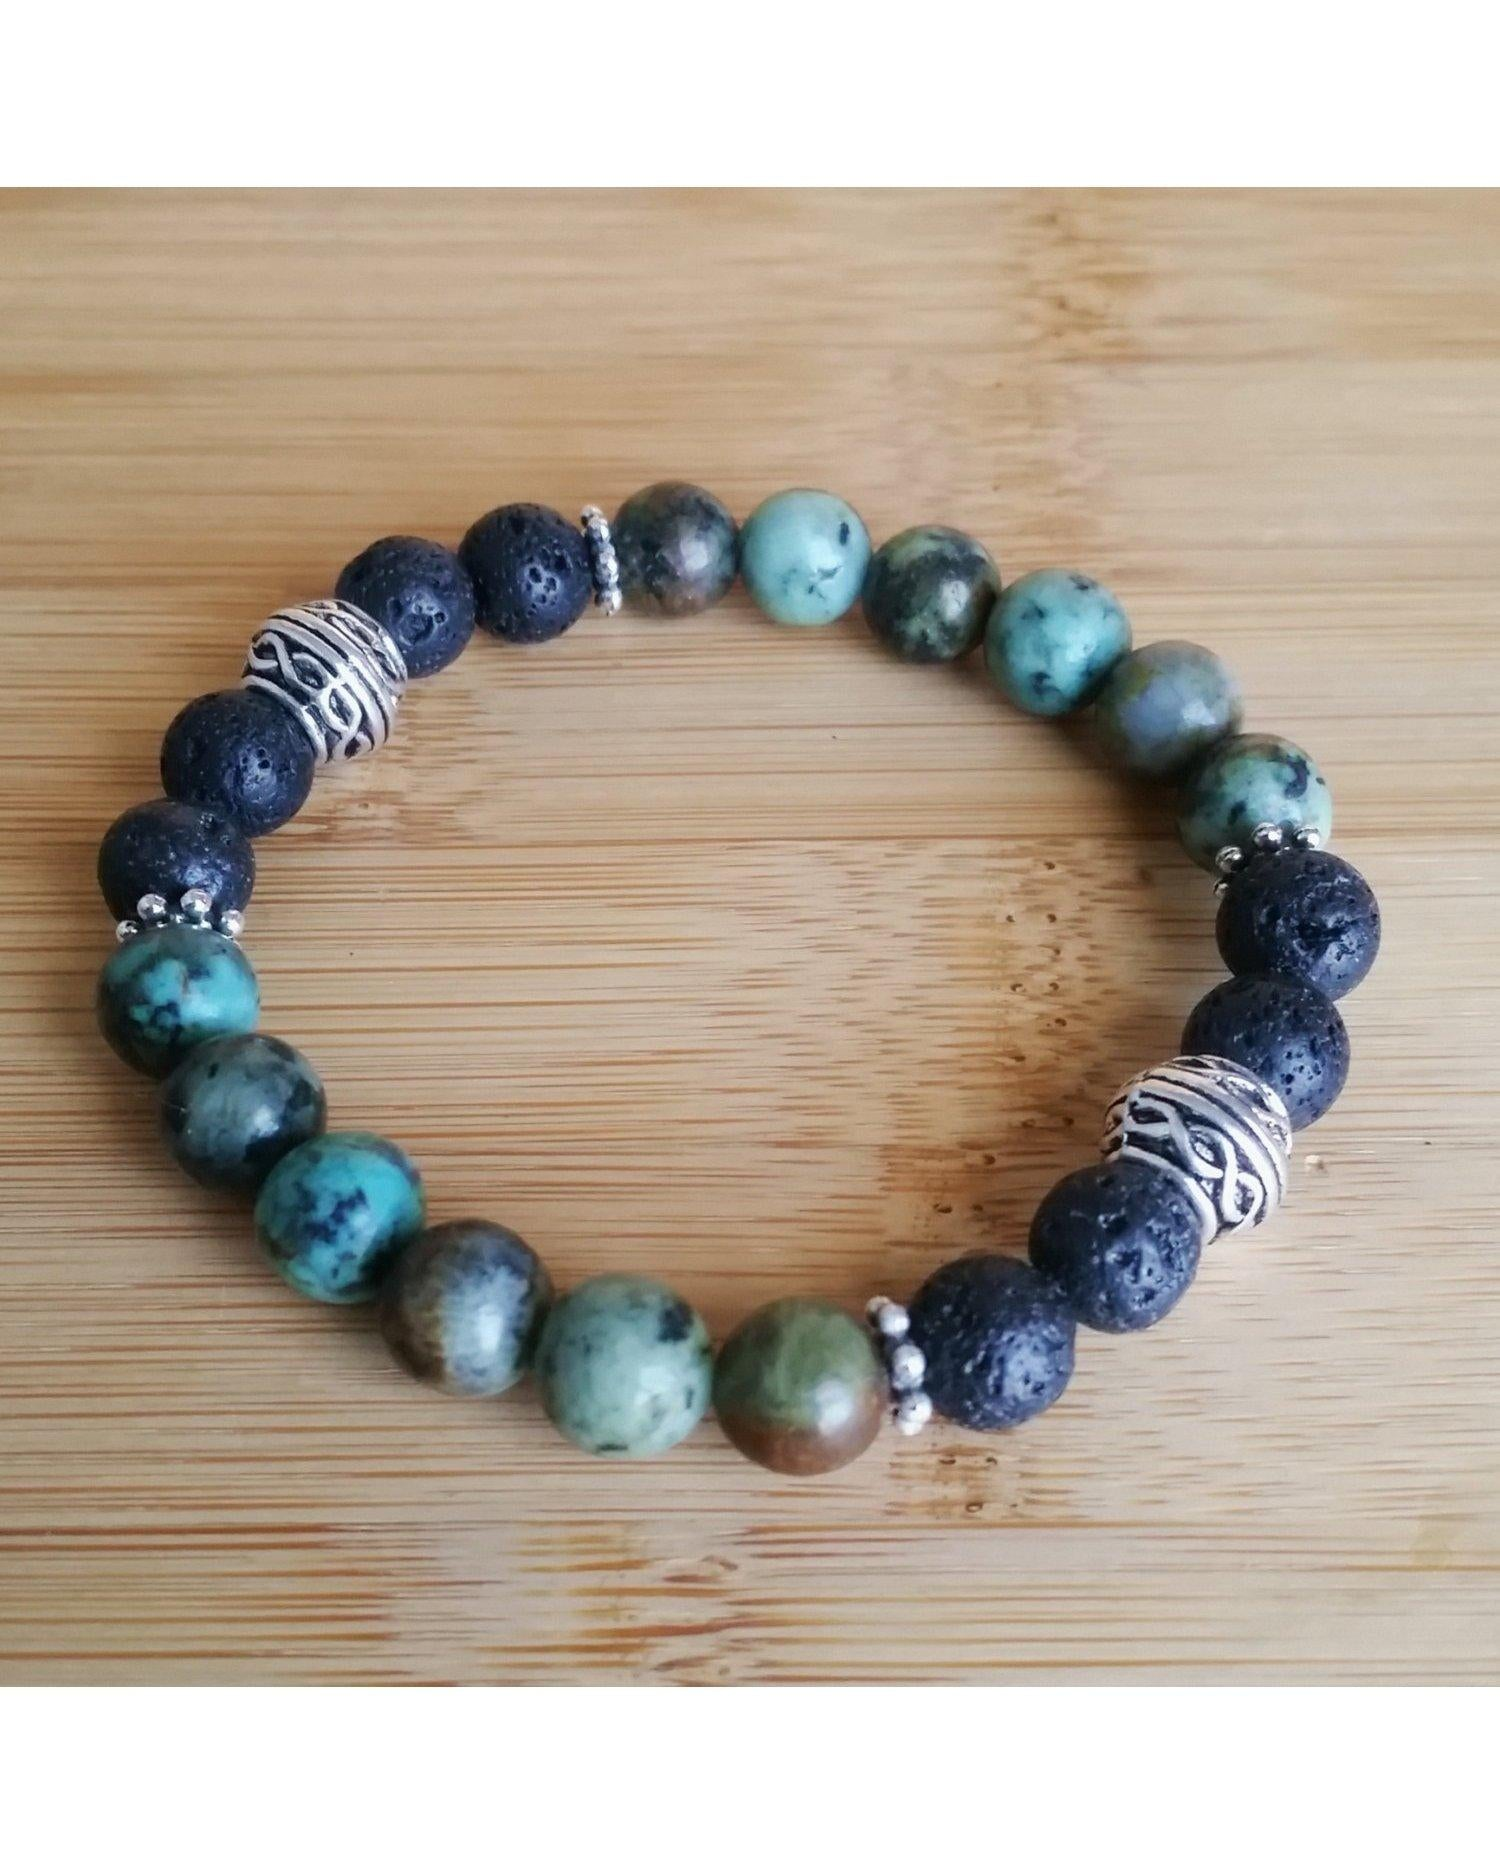 African Turquoise Mixed Color Semi-Precious Gemstone and Lava Rock 8mm Bead Essential Oil Diffuser Stretch Bracelet P049 - Essentially Elegant